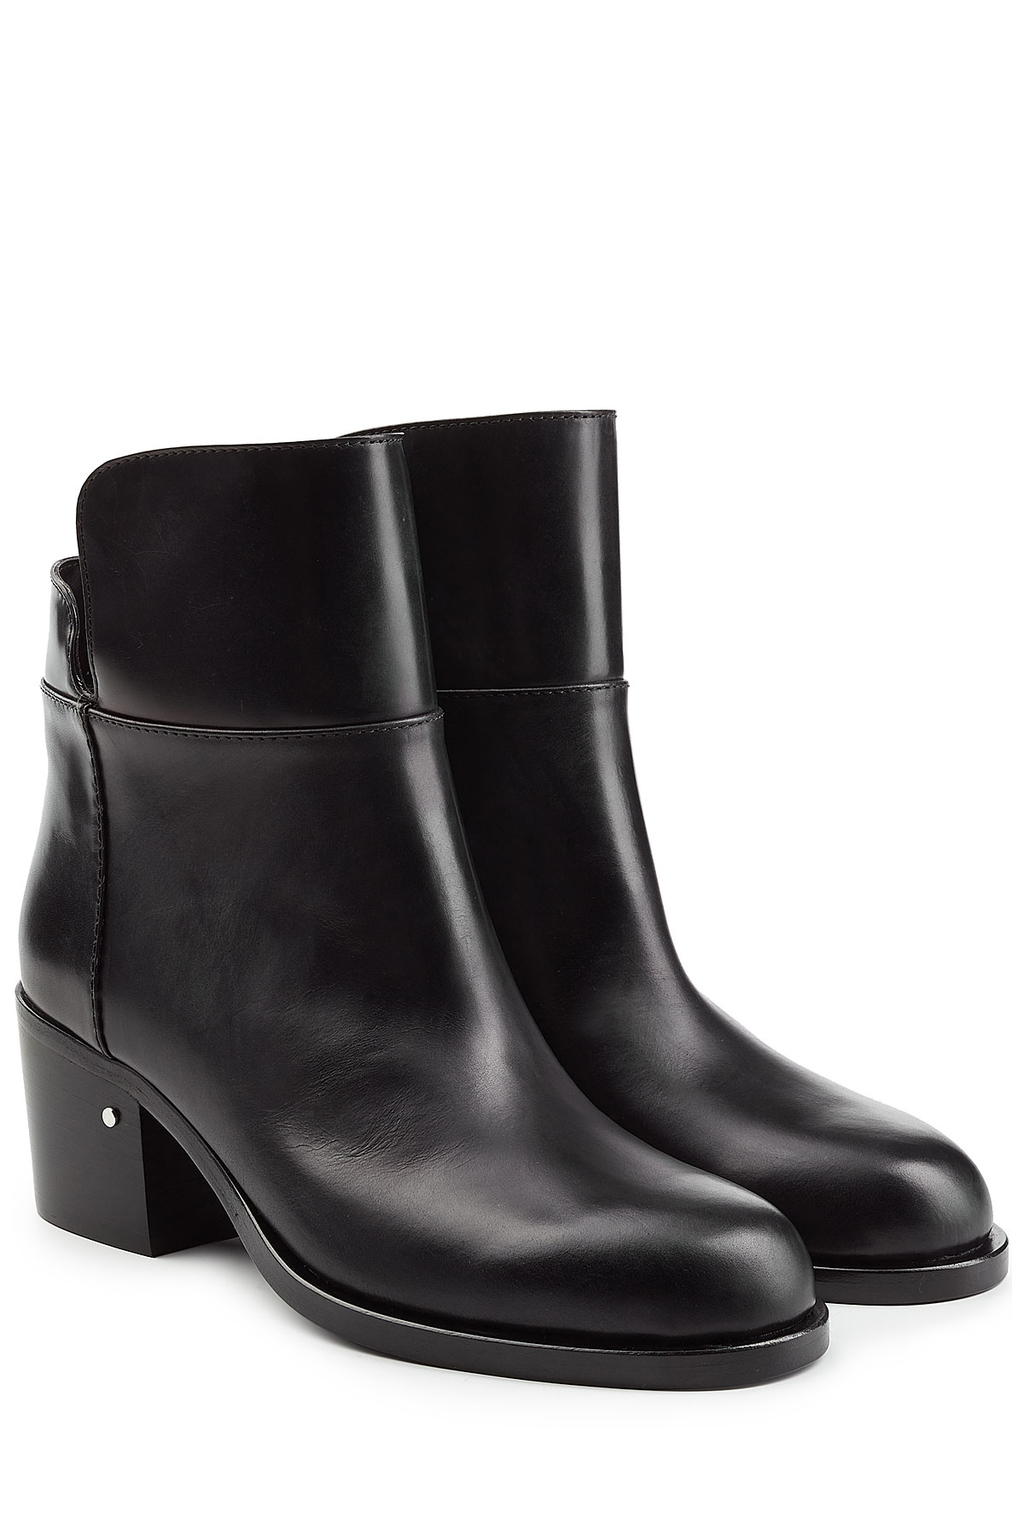 Leather Ankle Boots - predominant colour: black; occasions: casual; material: leather; heel height: mid; heel: block; toe: round toe; boot length: ankle boot; style: standard; finish: plain; pattern: plain; wardrobe: basic; season: a/w 2016